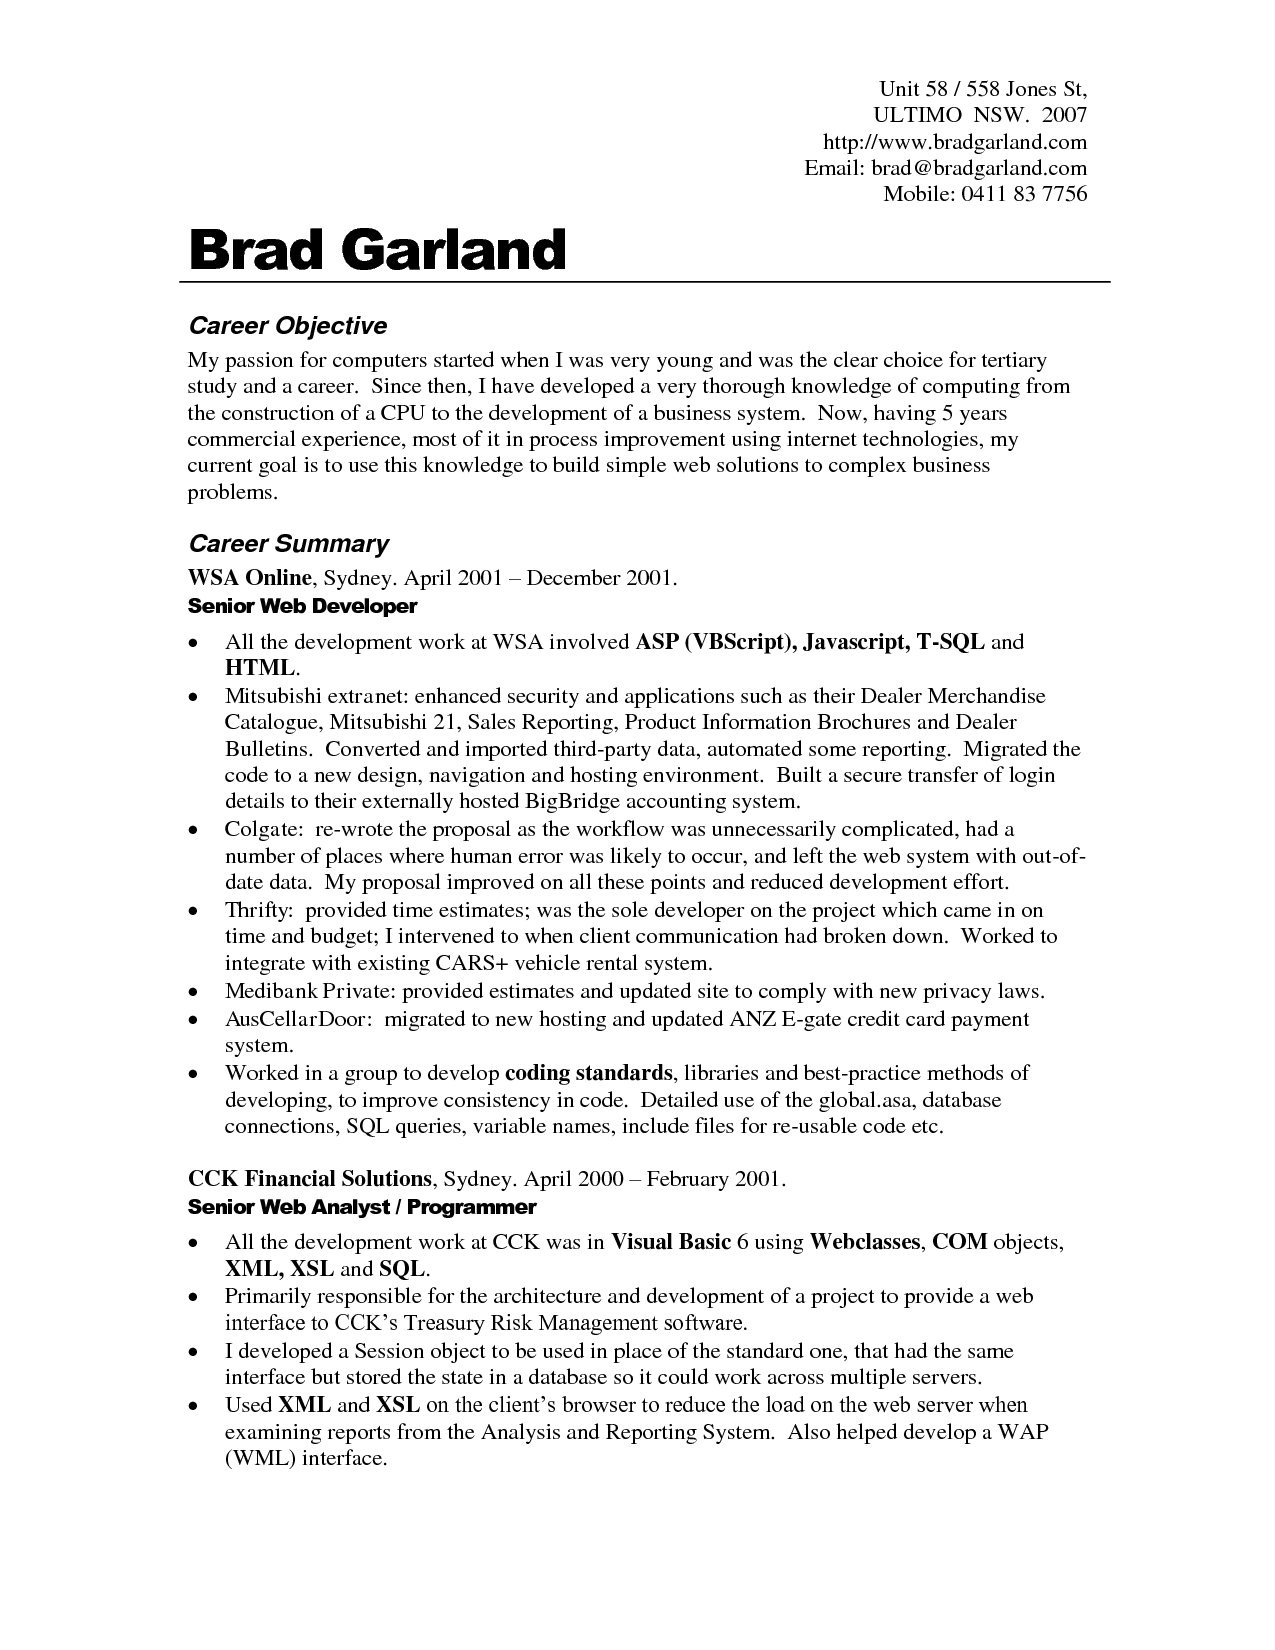 Sample Resume Objective Statement Resume Objectives Examples Best Templateresume Objective Examples